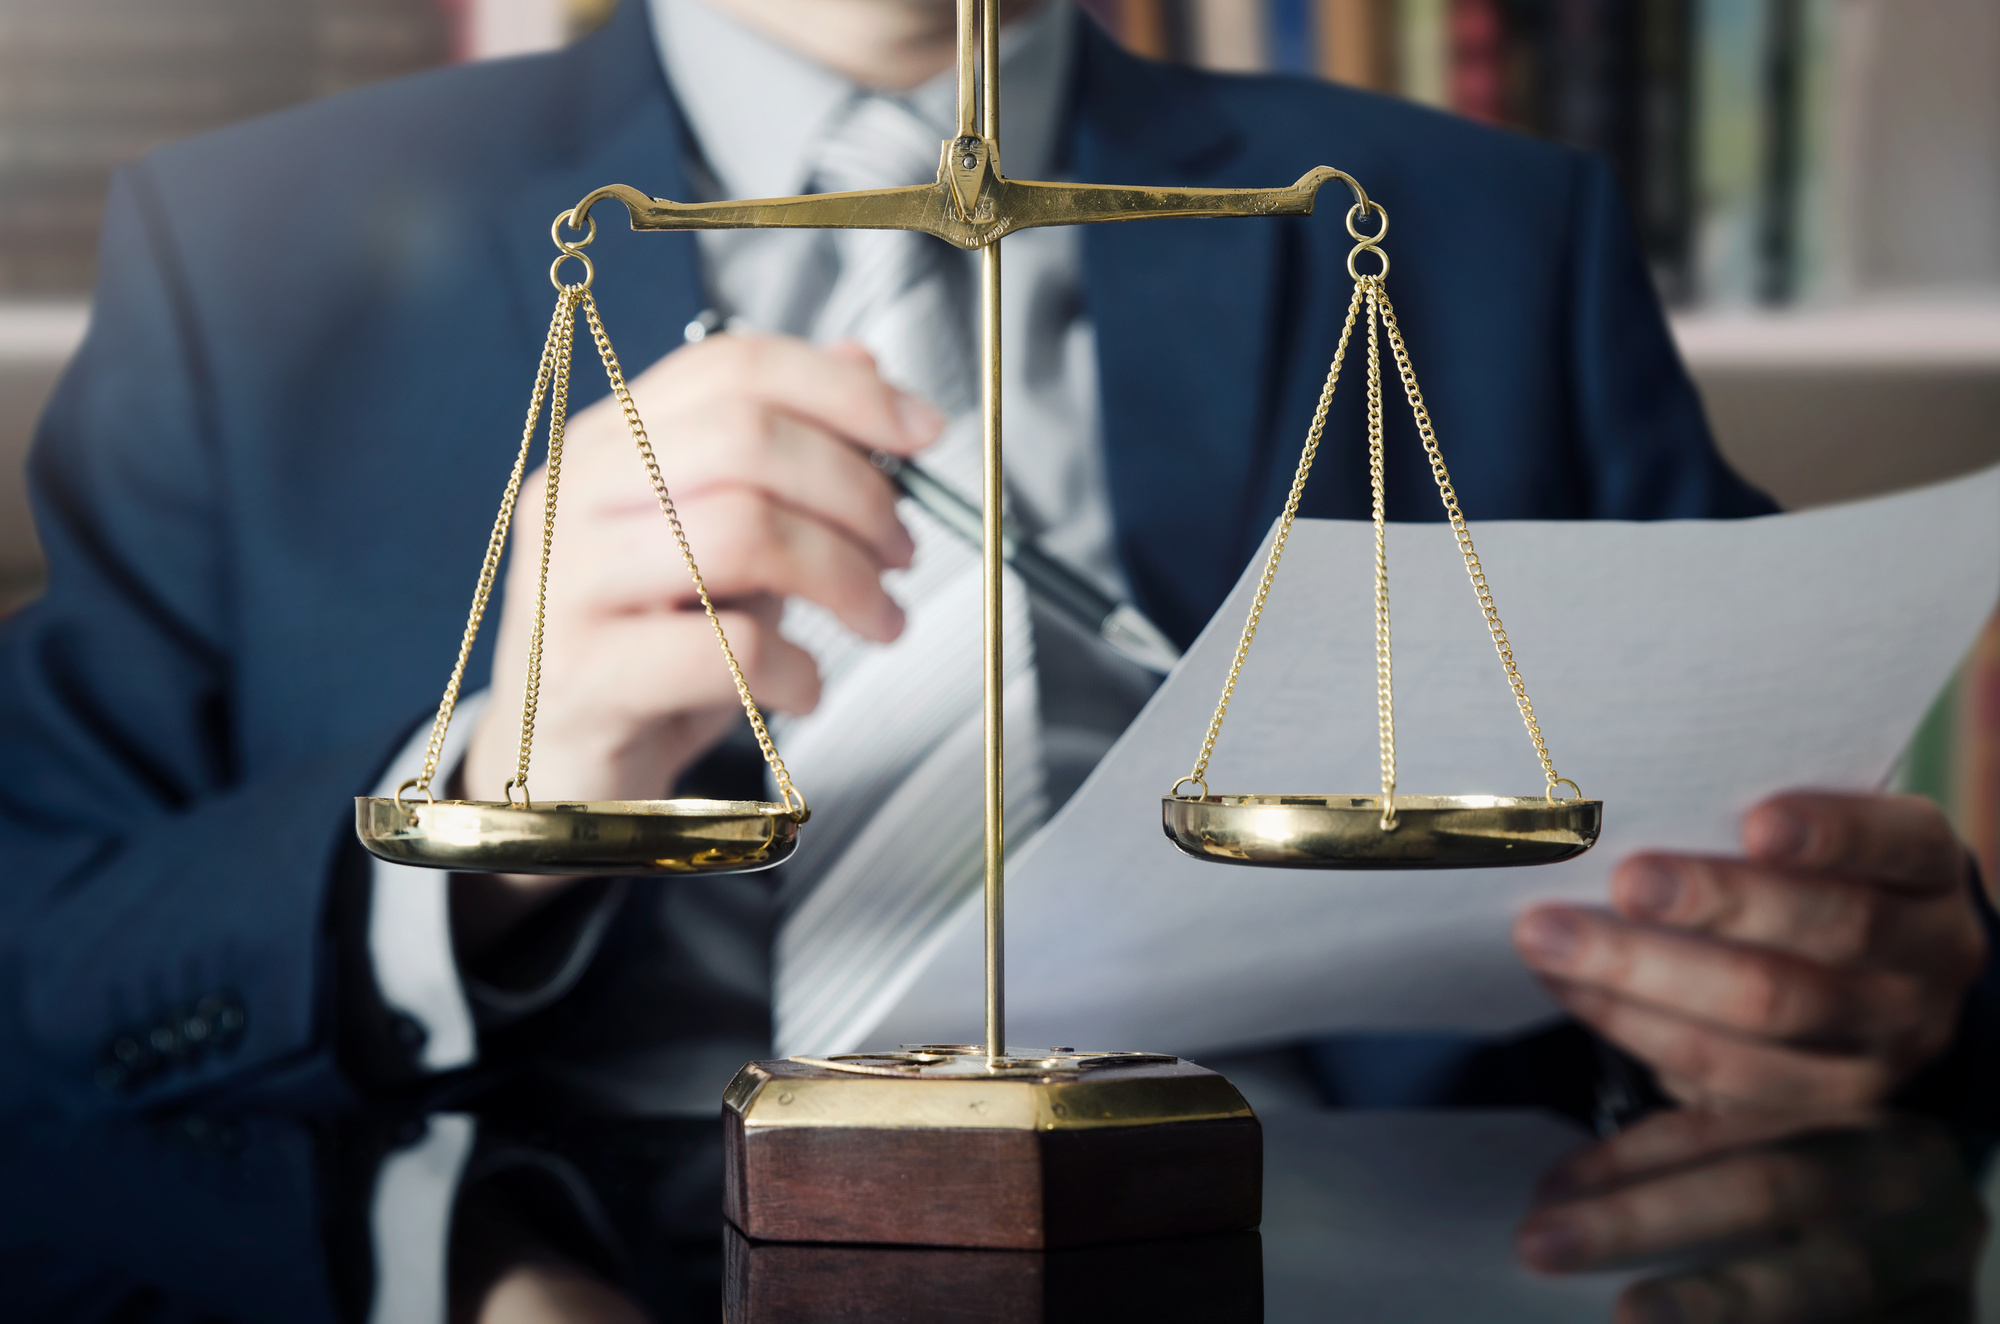 Weight scale of justice